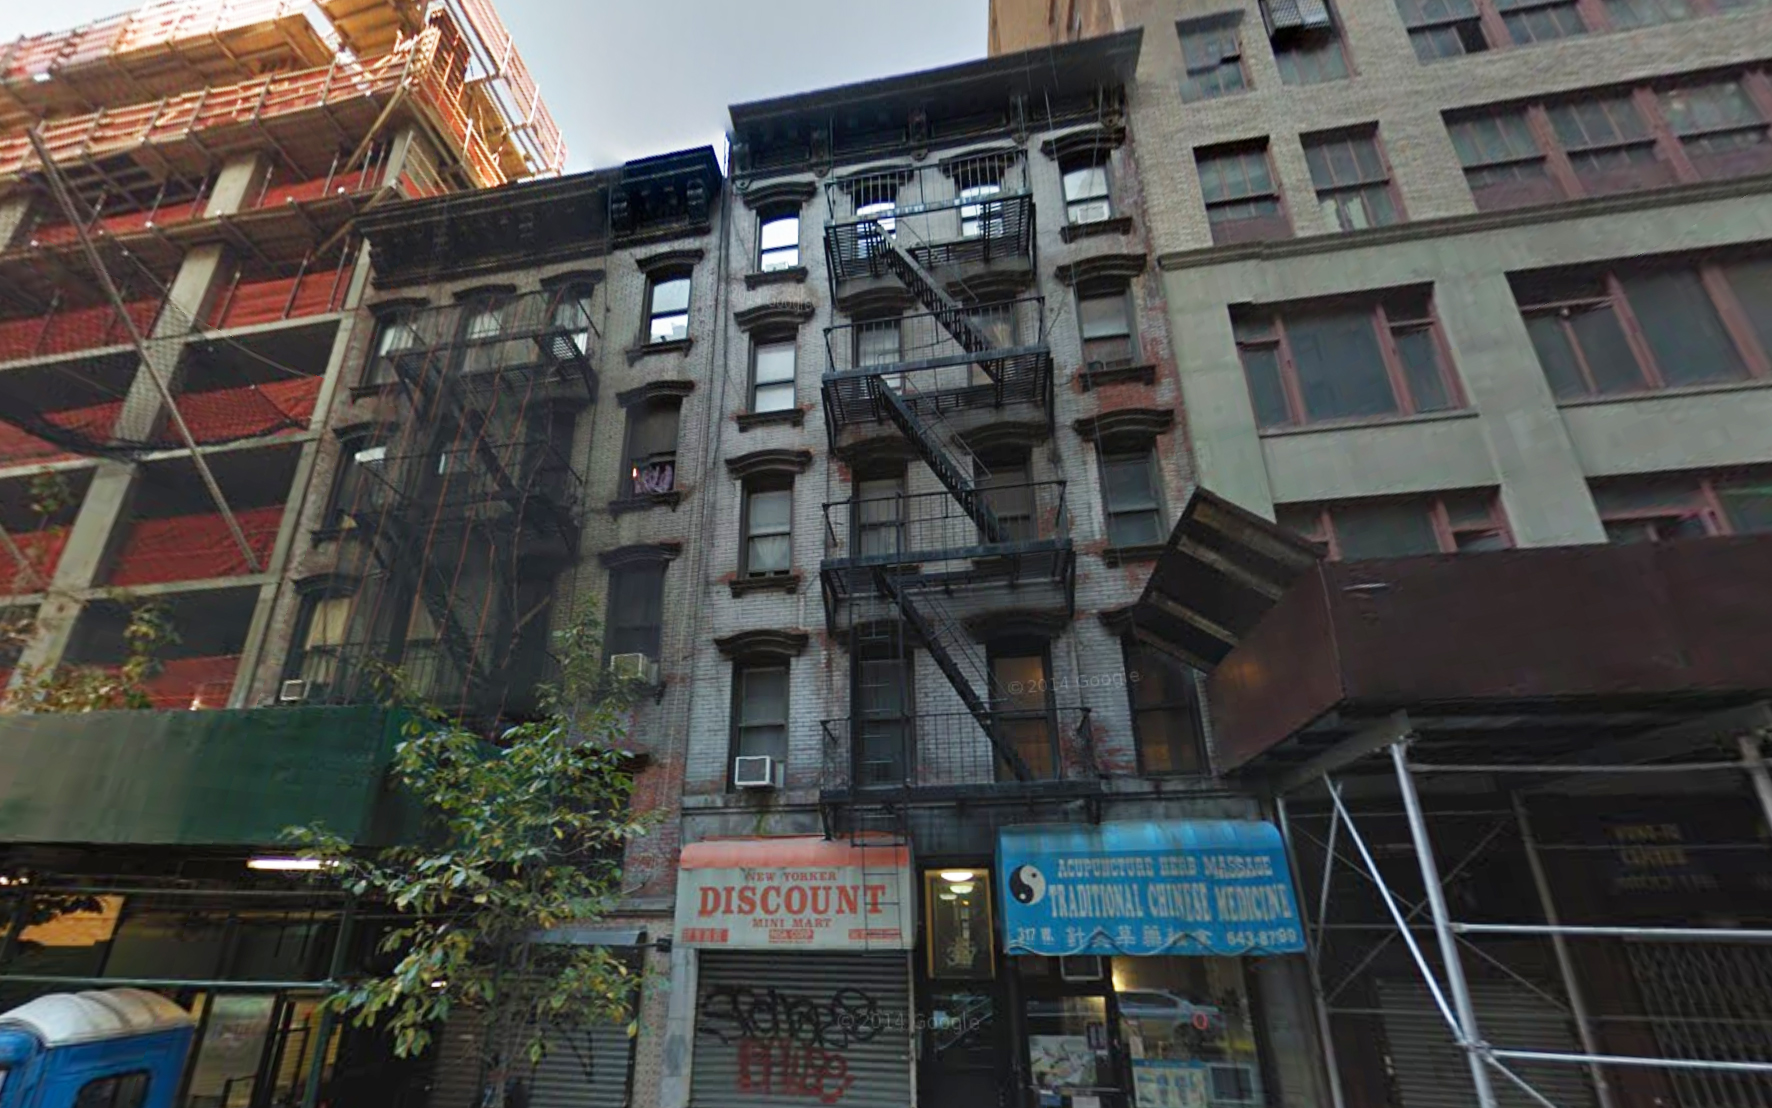 319 West 35th Street, image via Google Maps